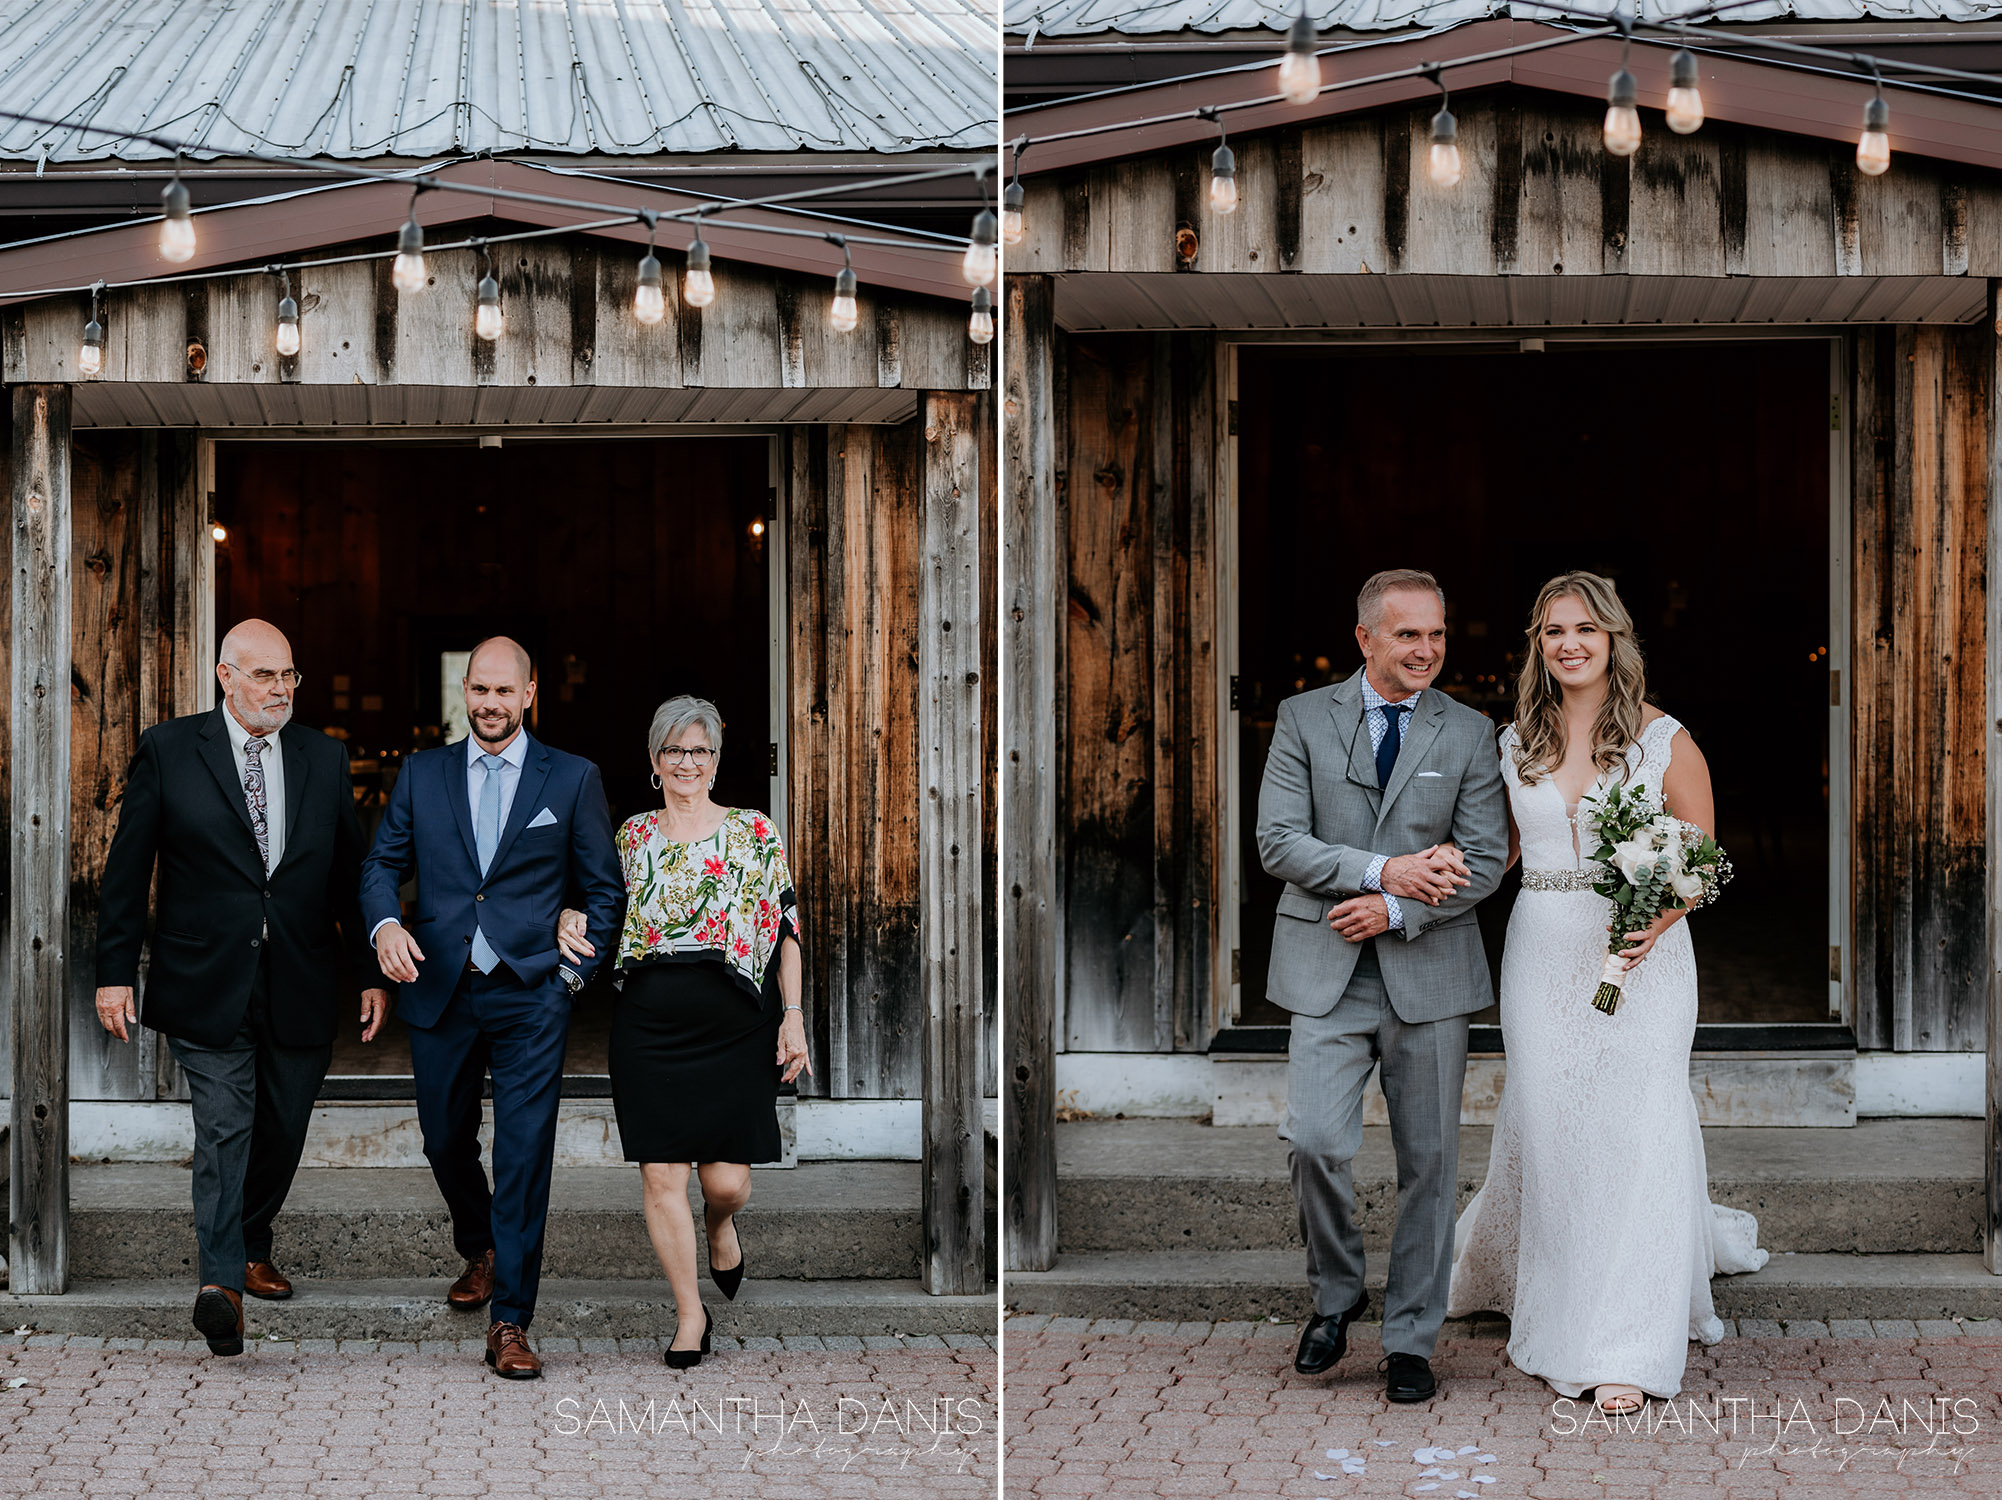 Ottawa wedding photographer strathmere samantha danis photography ottawa wedding venue